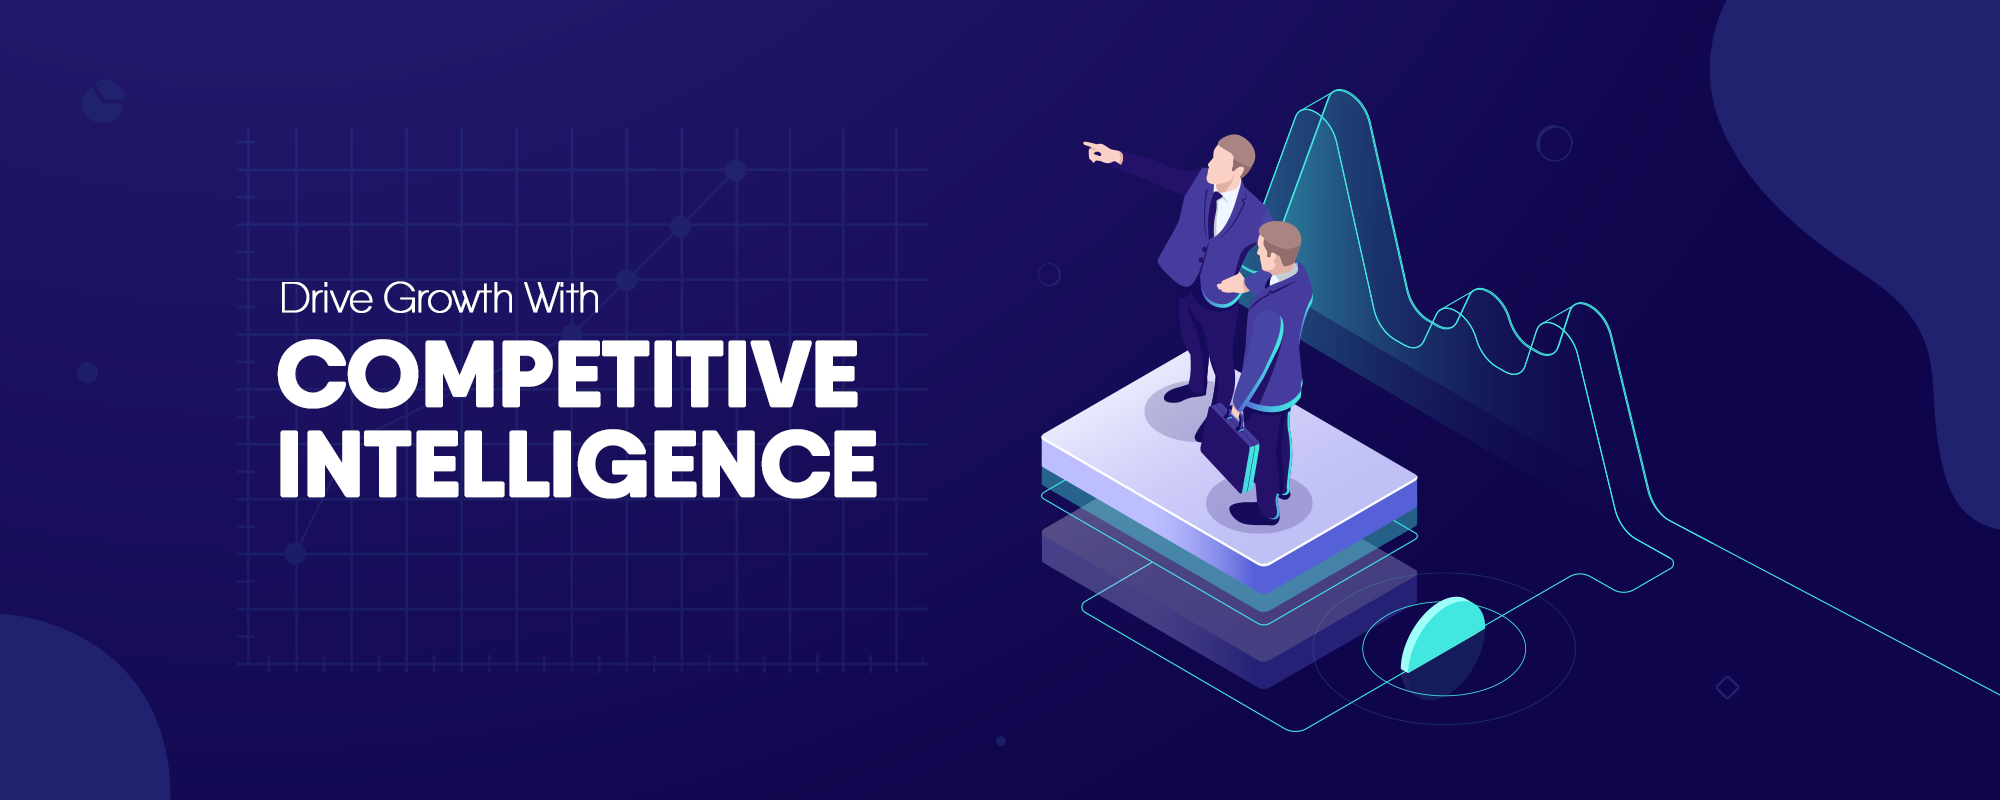 How to Drive Growth With Competitive Intelligence